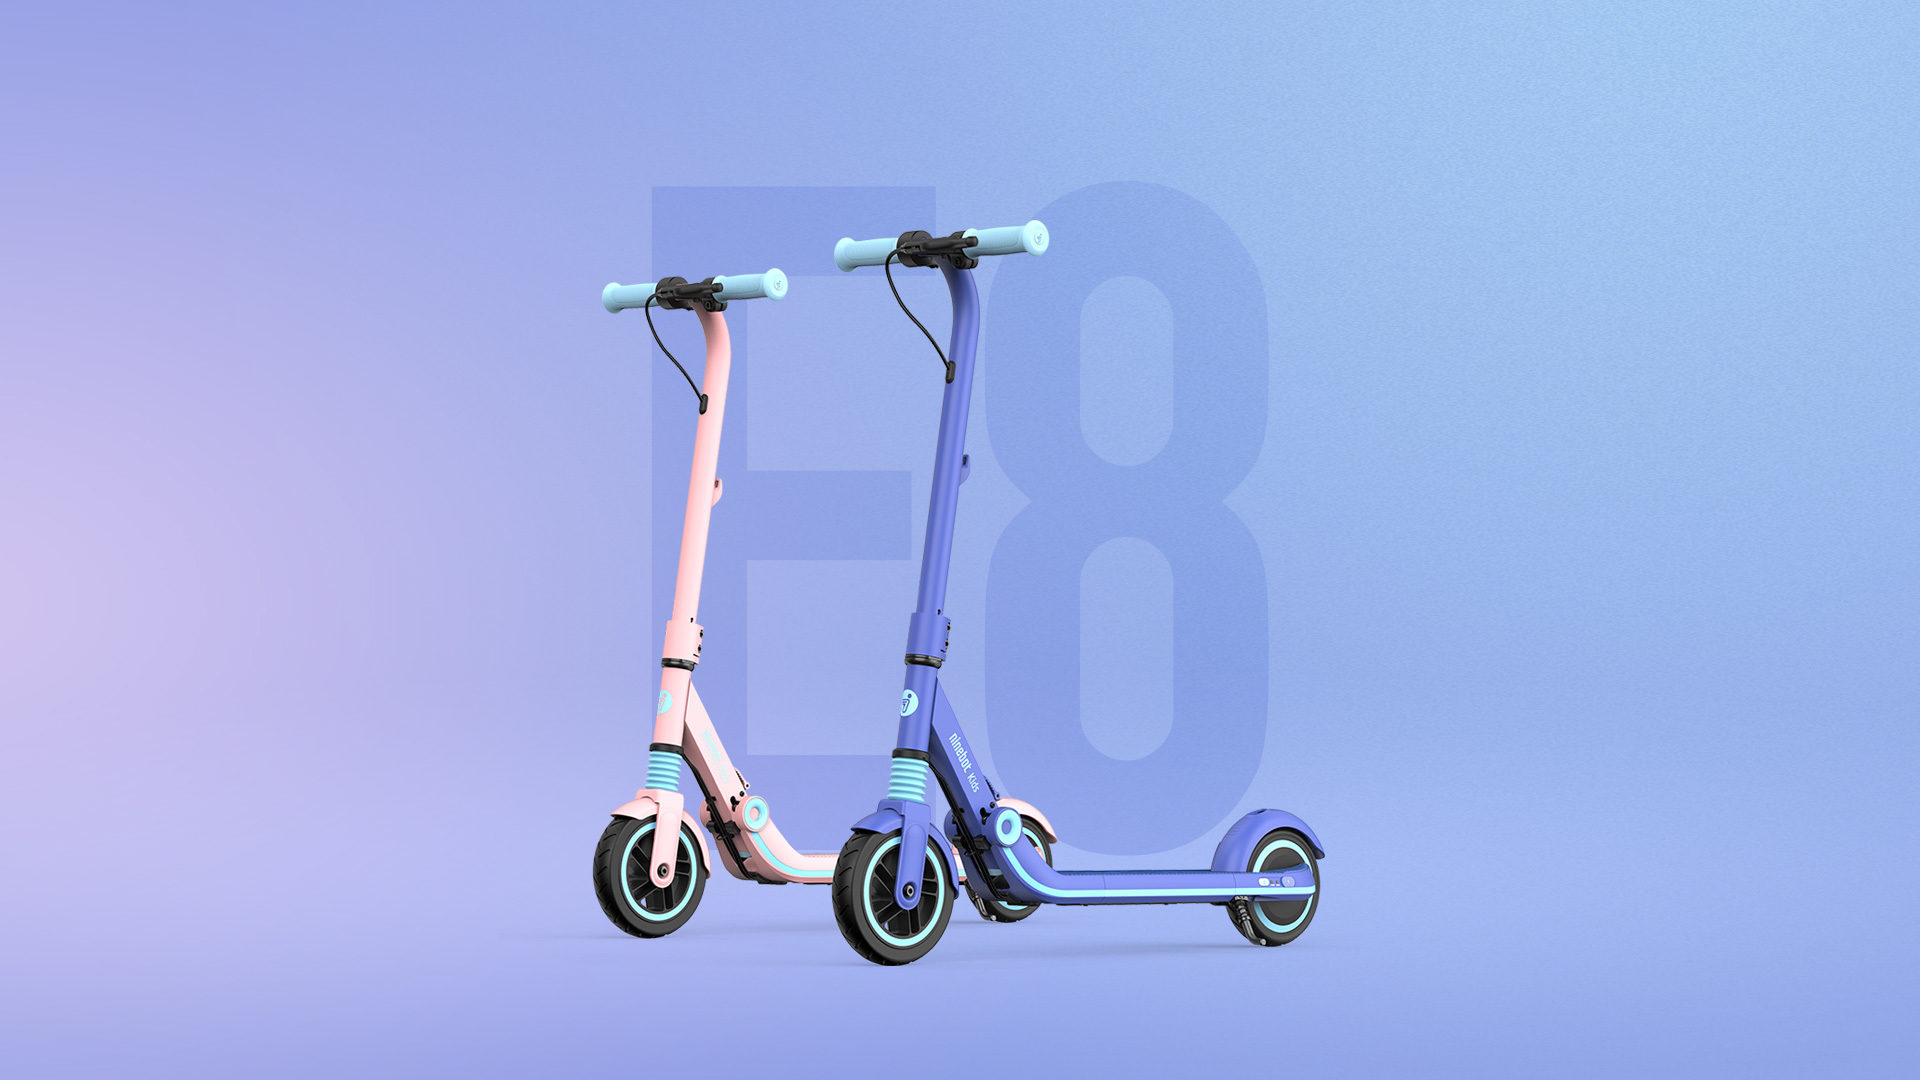 [hero] Ninebot eKickScooter ZING E8 Powered by Segway